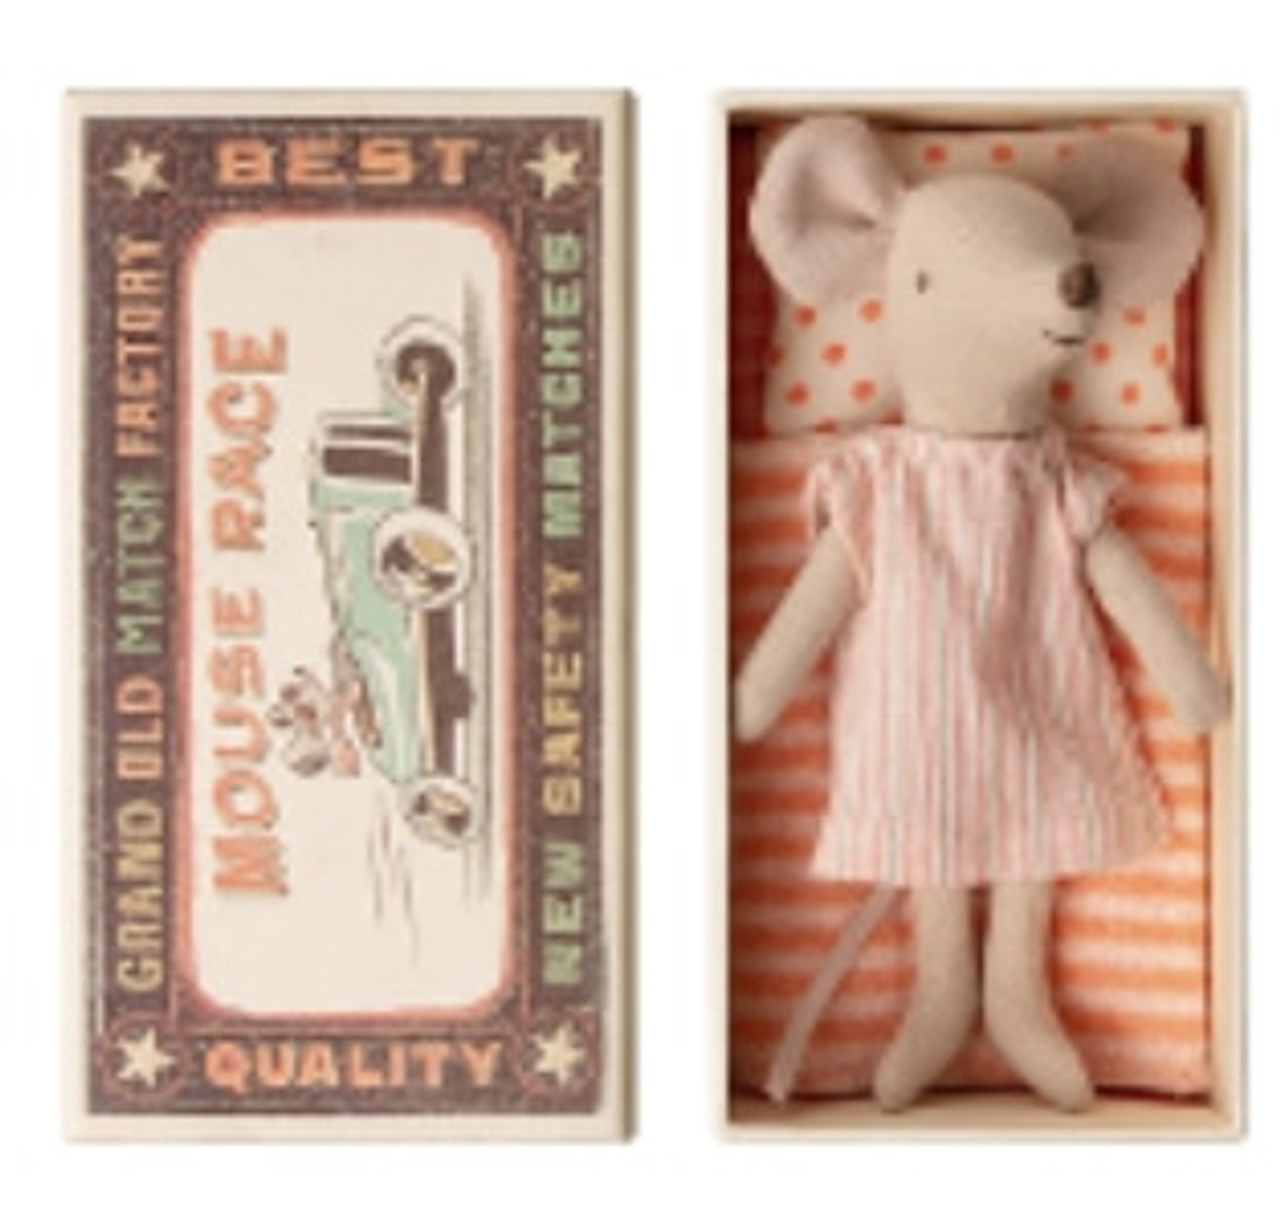 Big Sister Mouse in Box - pjs maileg MG-16973201